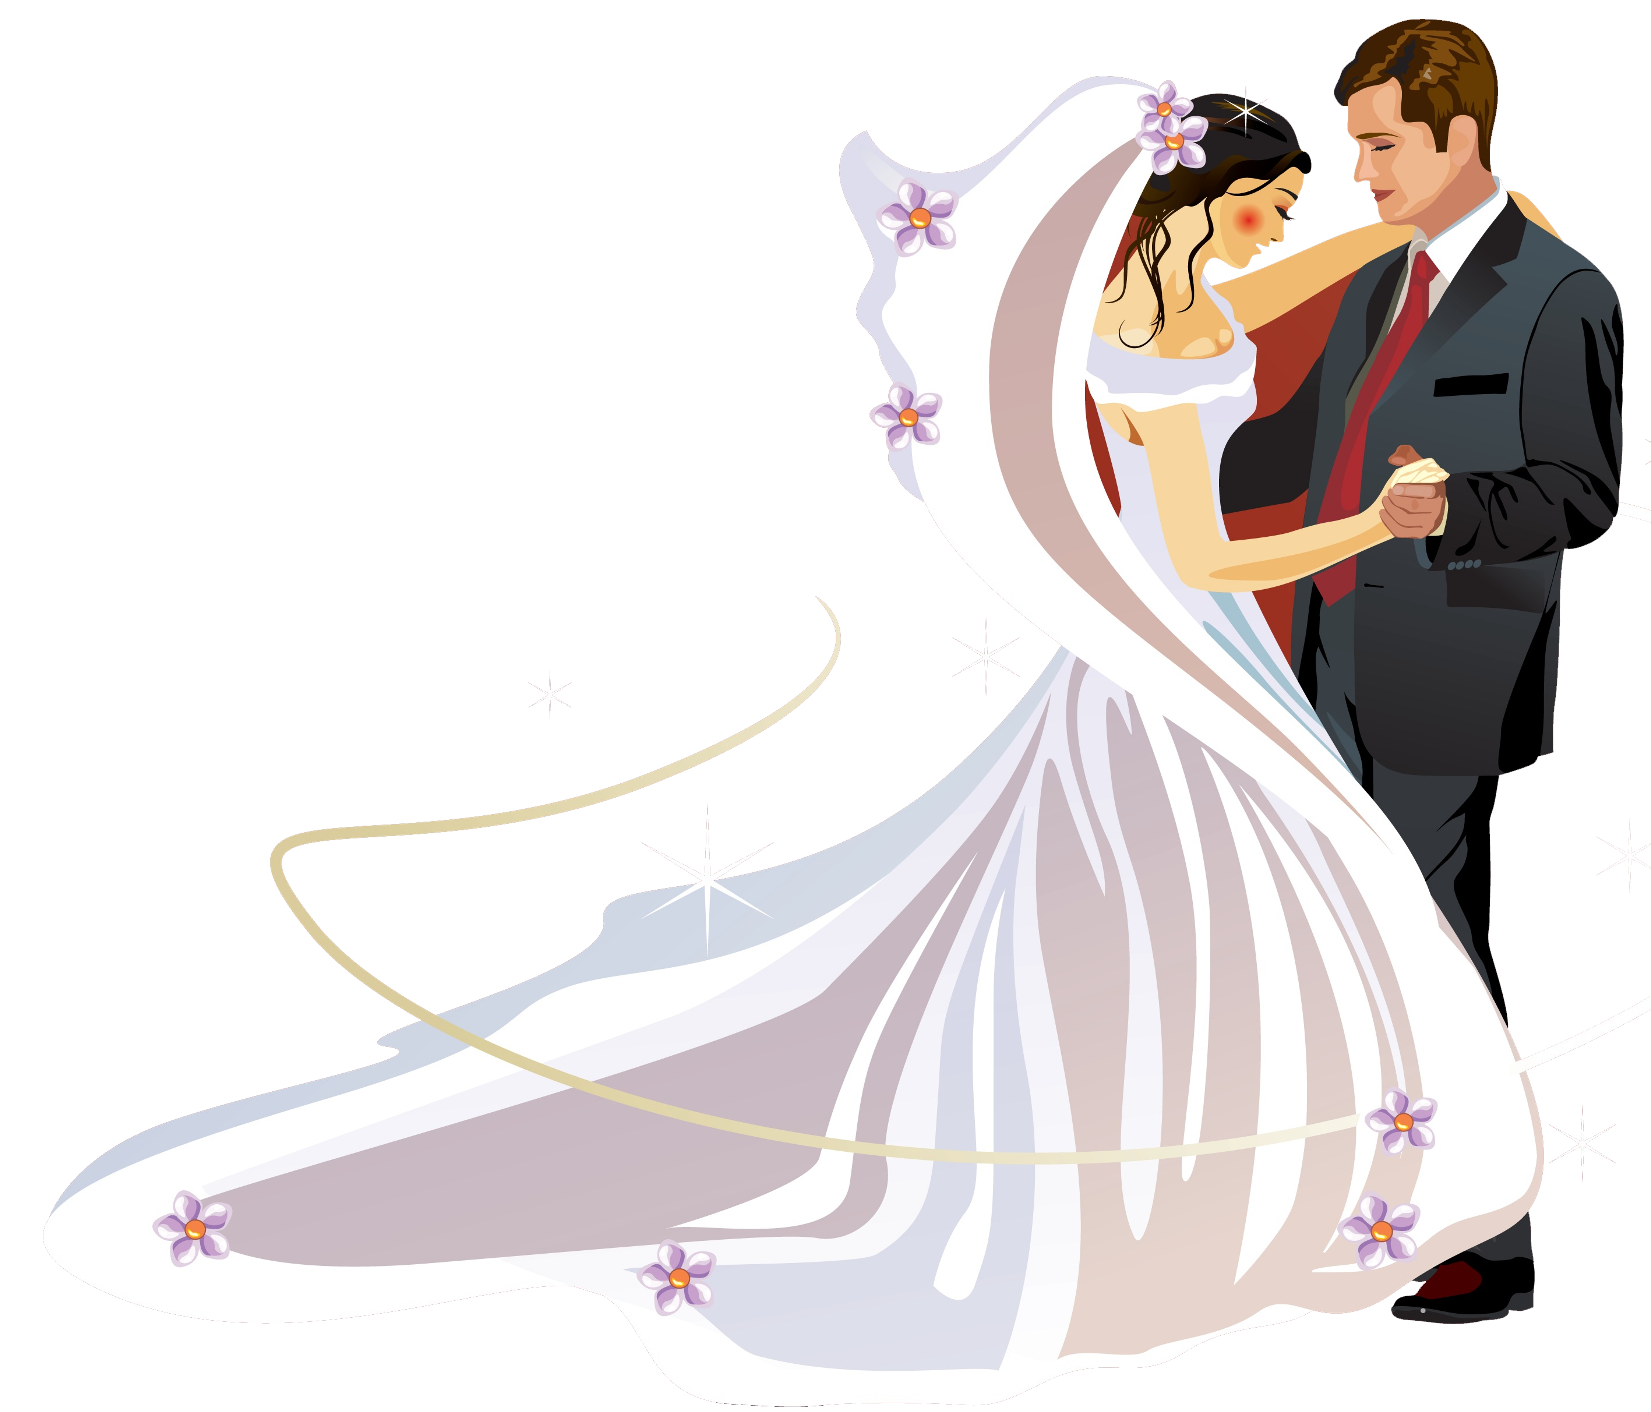 Wedding couple clipart png. Collection of couples